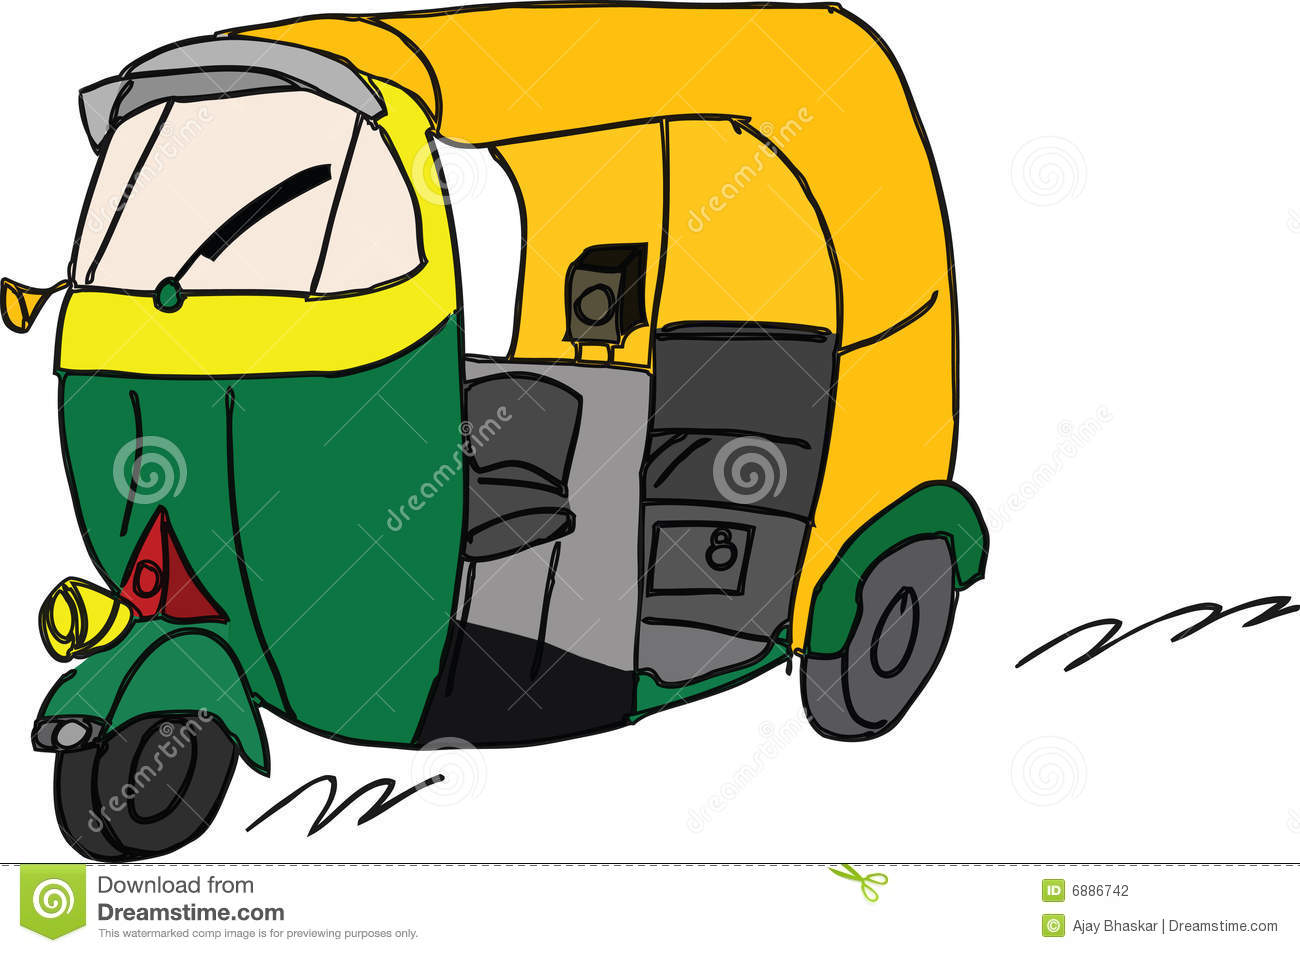 Stock illustrations photography. Cycle rickshaw clipart